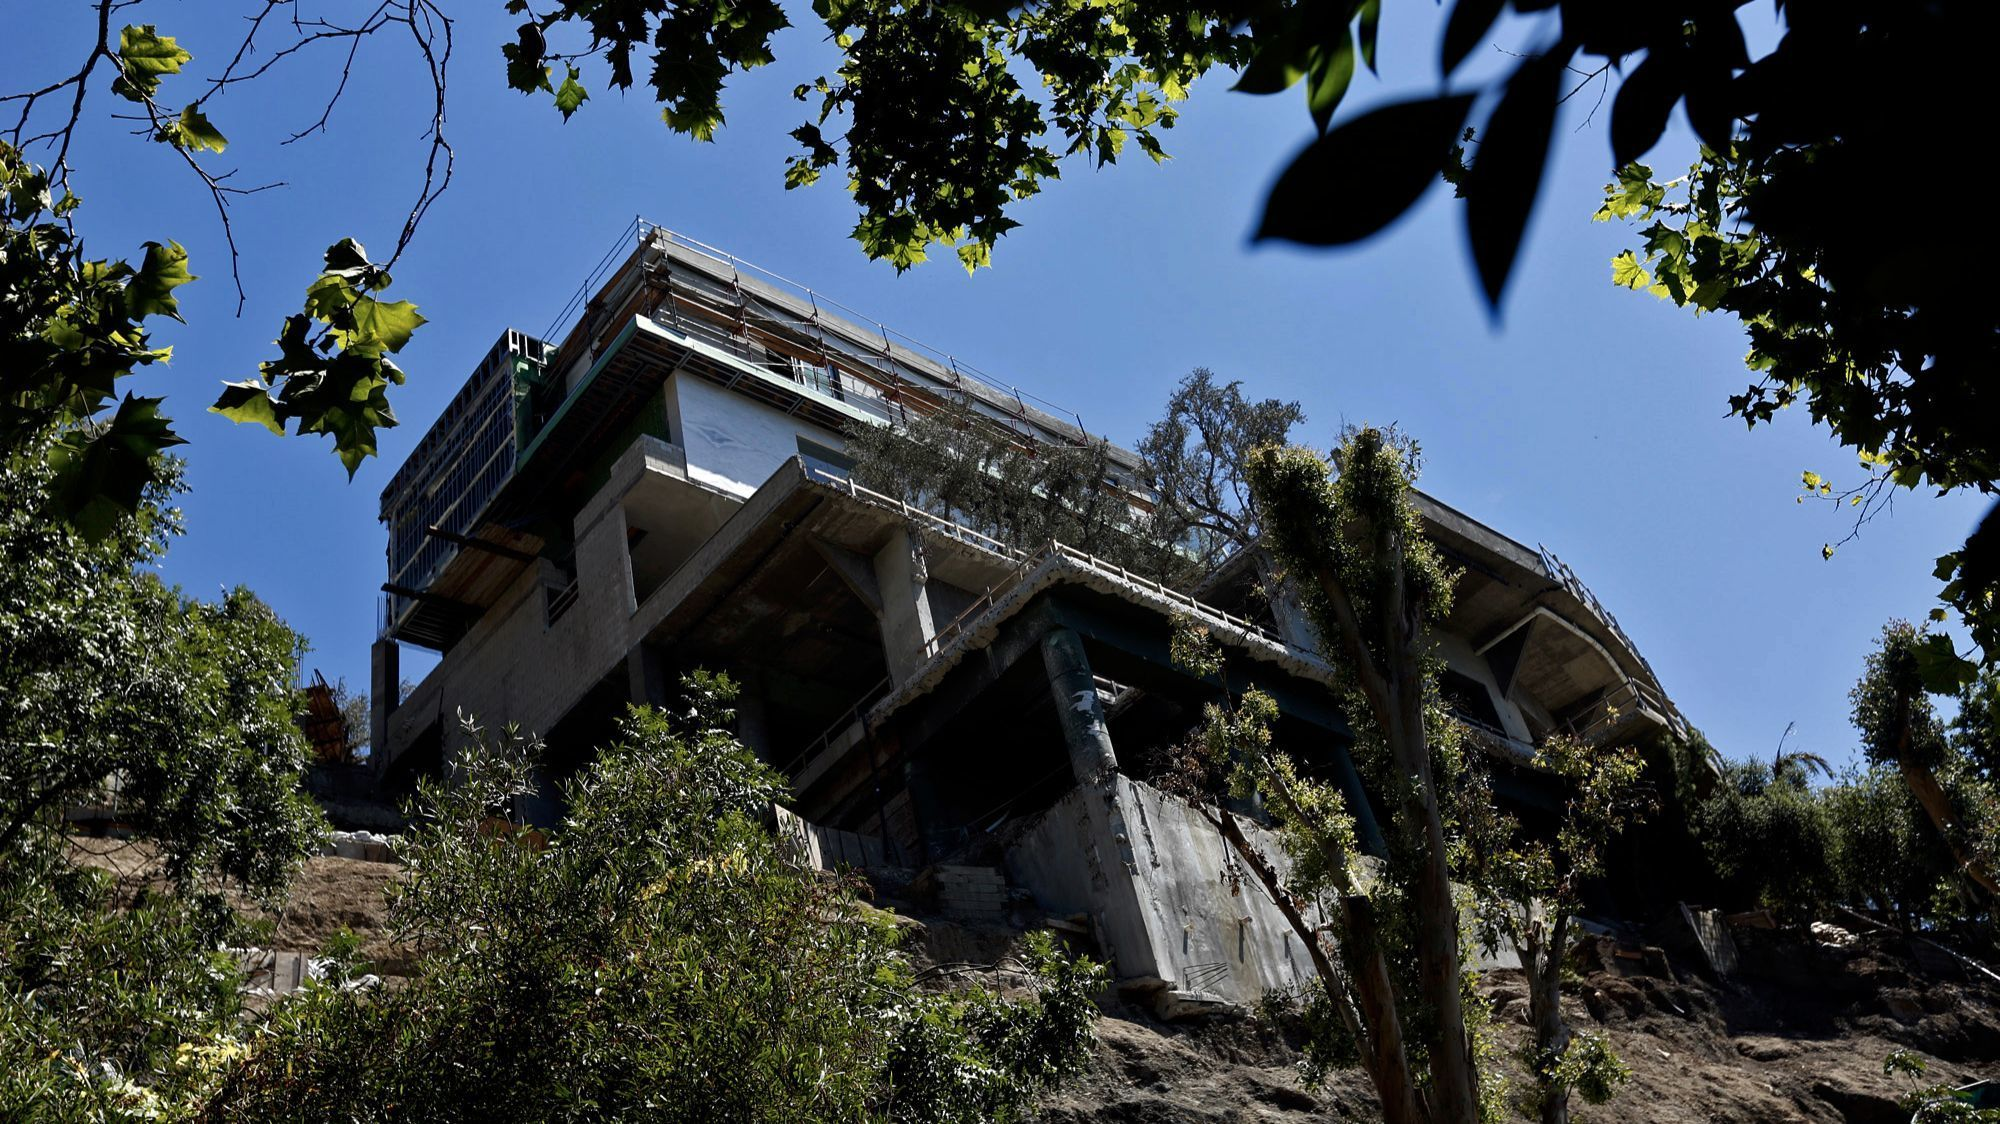 Three years ago, Los Angeles demanded that builders halt work on this mansion in the hills of Bel-Air.